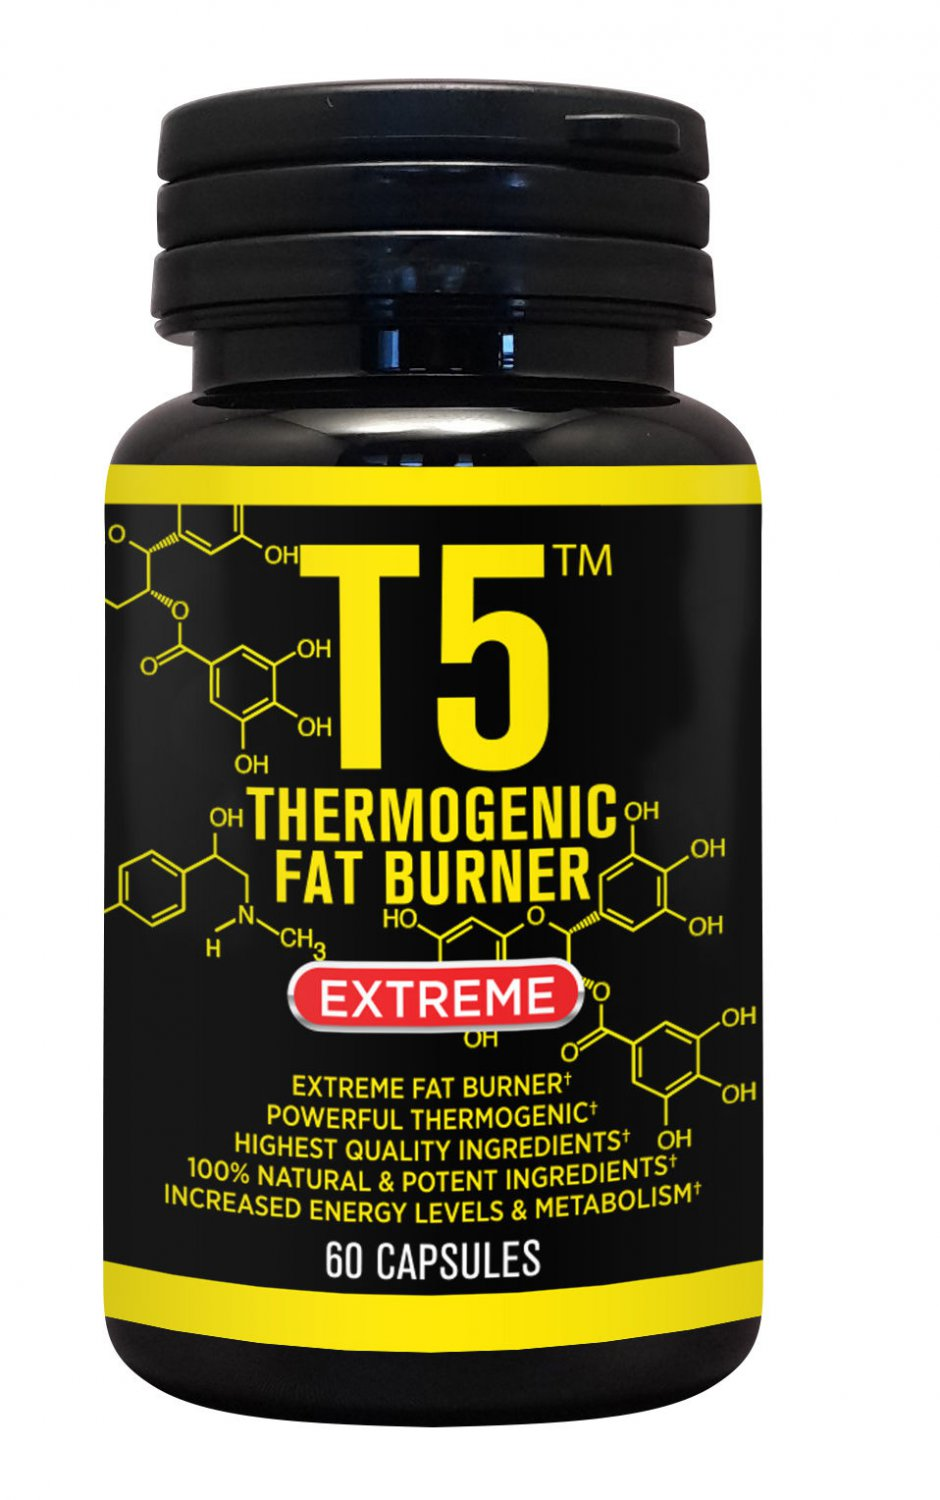 T5 FAT BURNER SLIMMING DIET PILLS WEIGHT LOSS CAPSULES ...